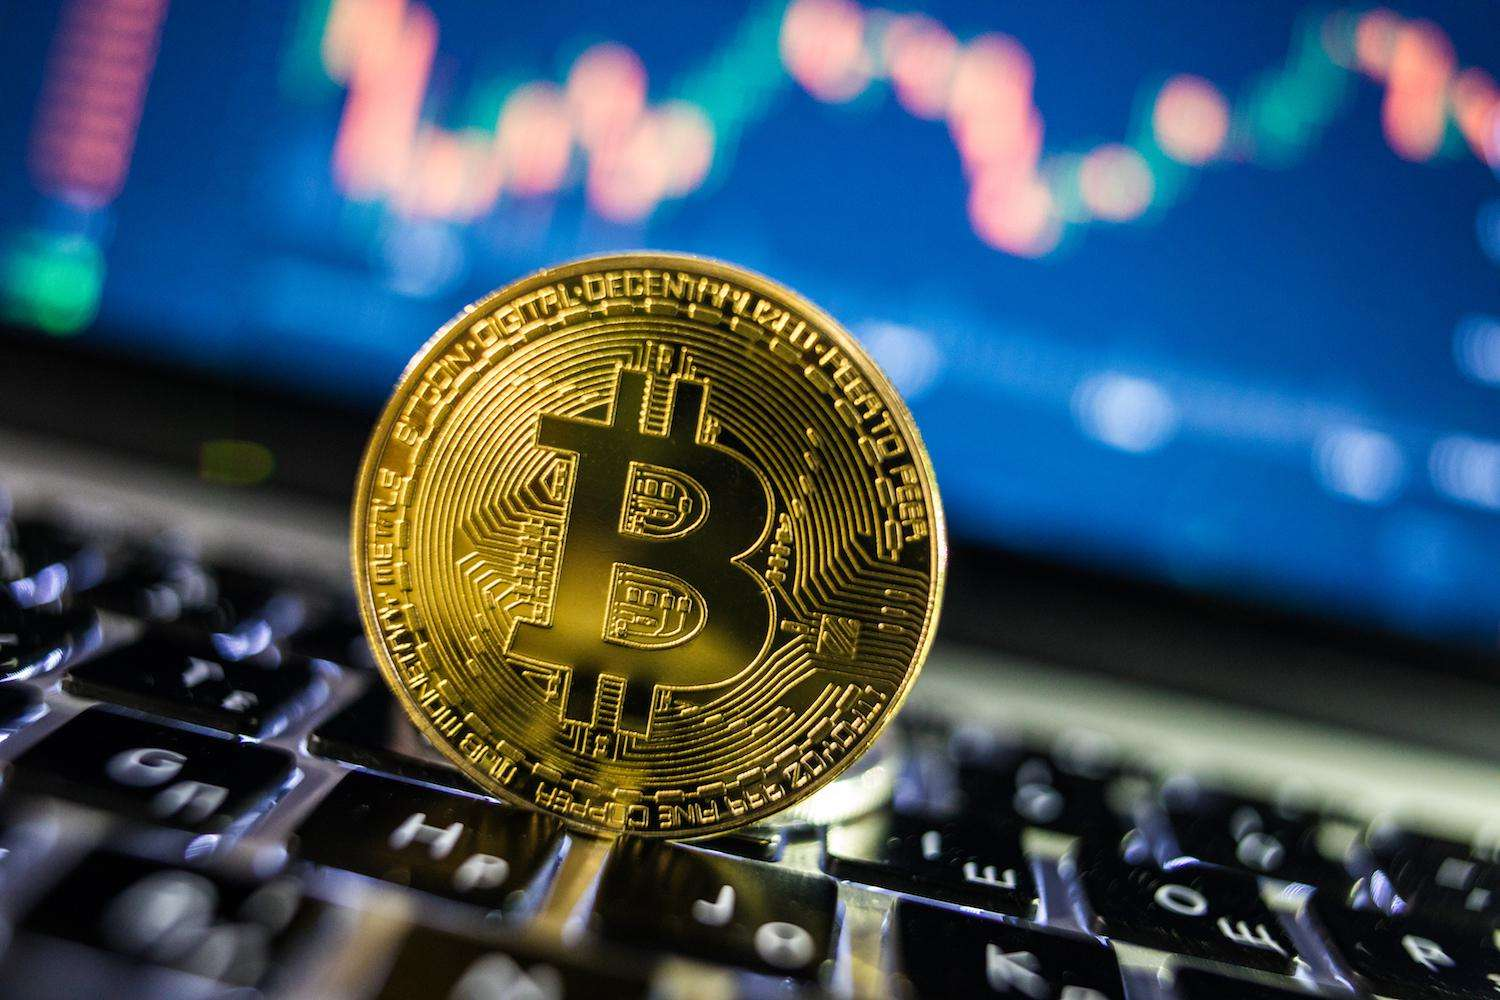 The old Zeng said currency: Bitcoin bulls retracement when they meet resistance, is it a shortfall or a real waterfall?